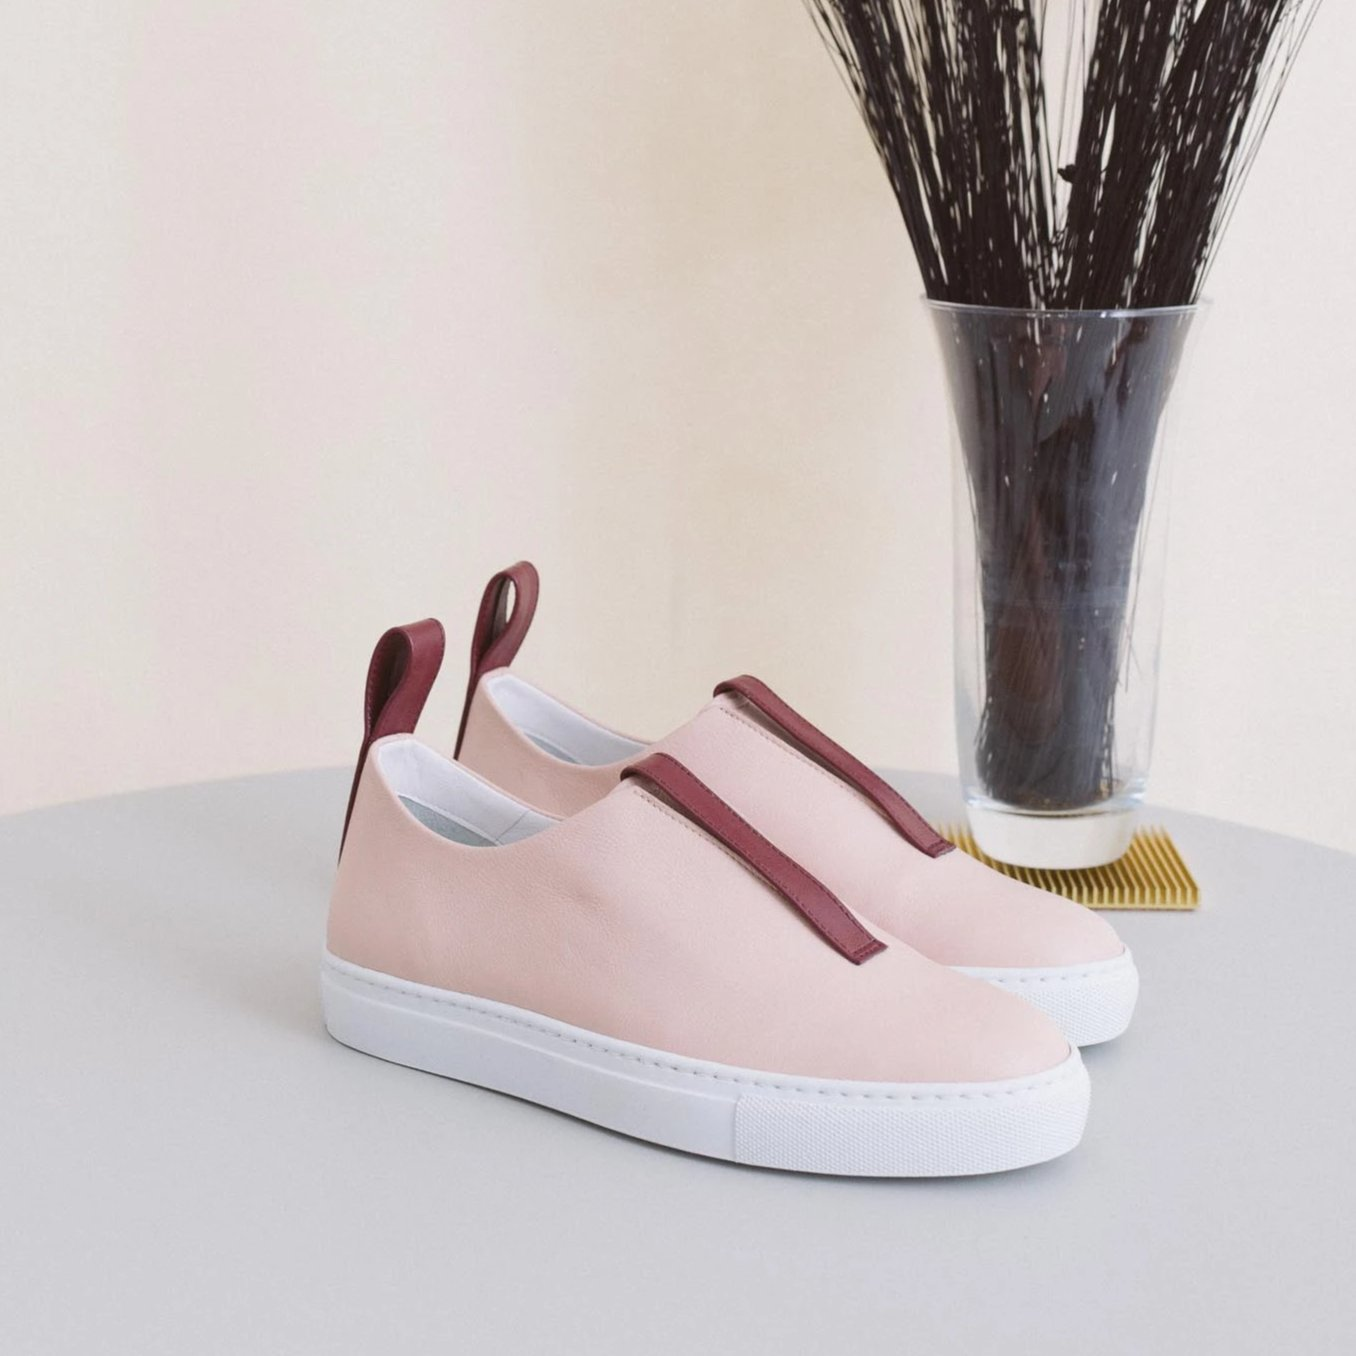 Sneakers Model 2 - Nude & Burgundy Sale (SOLD OUT)